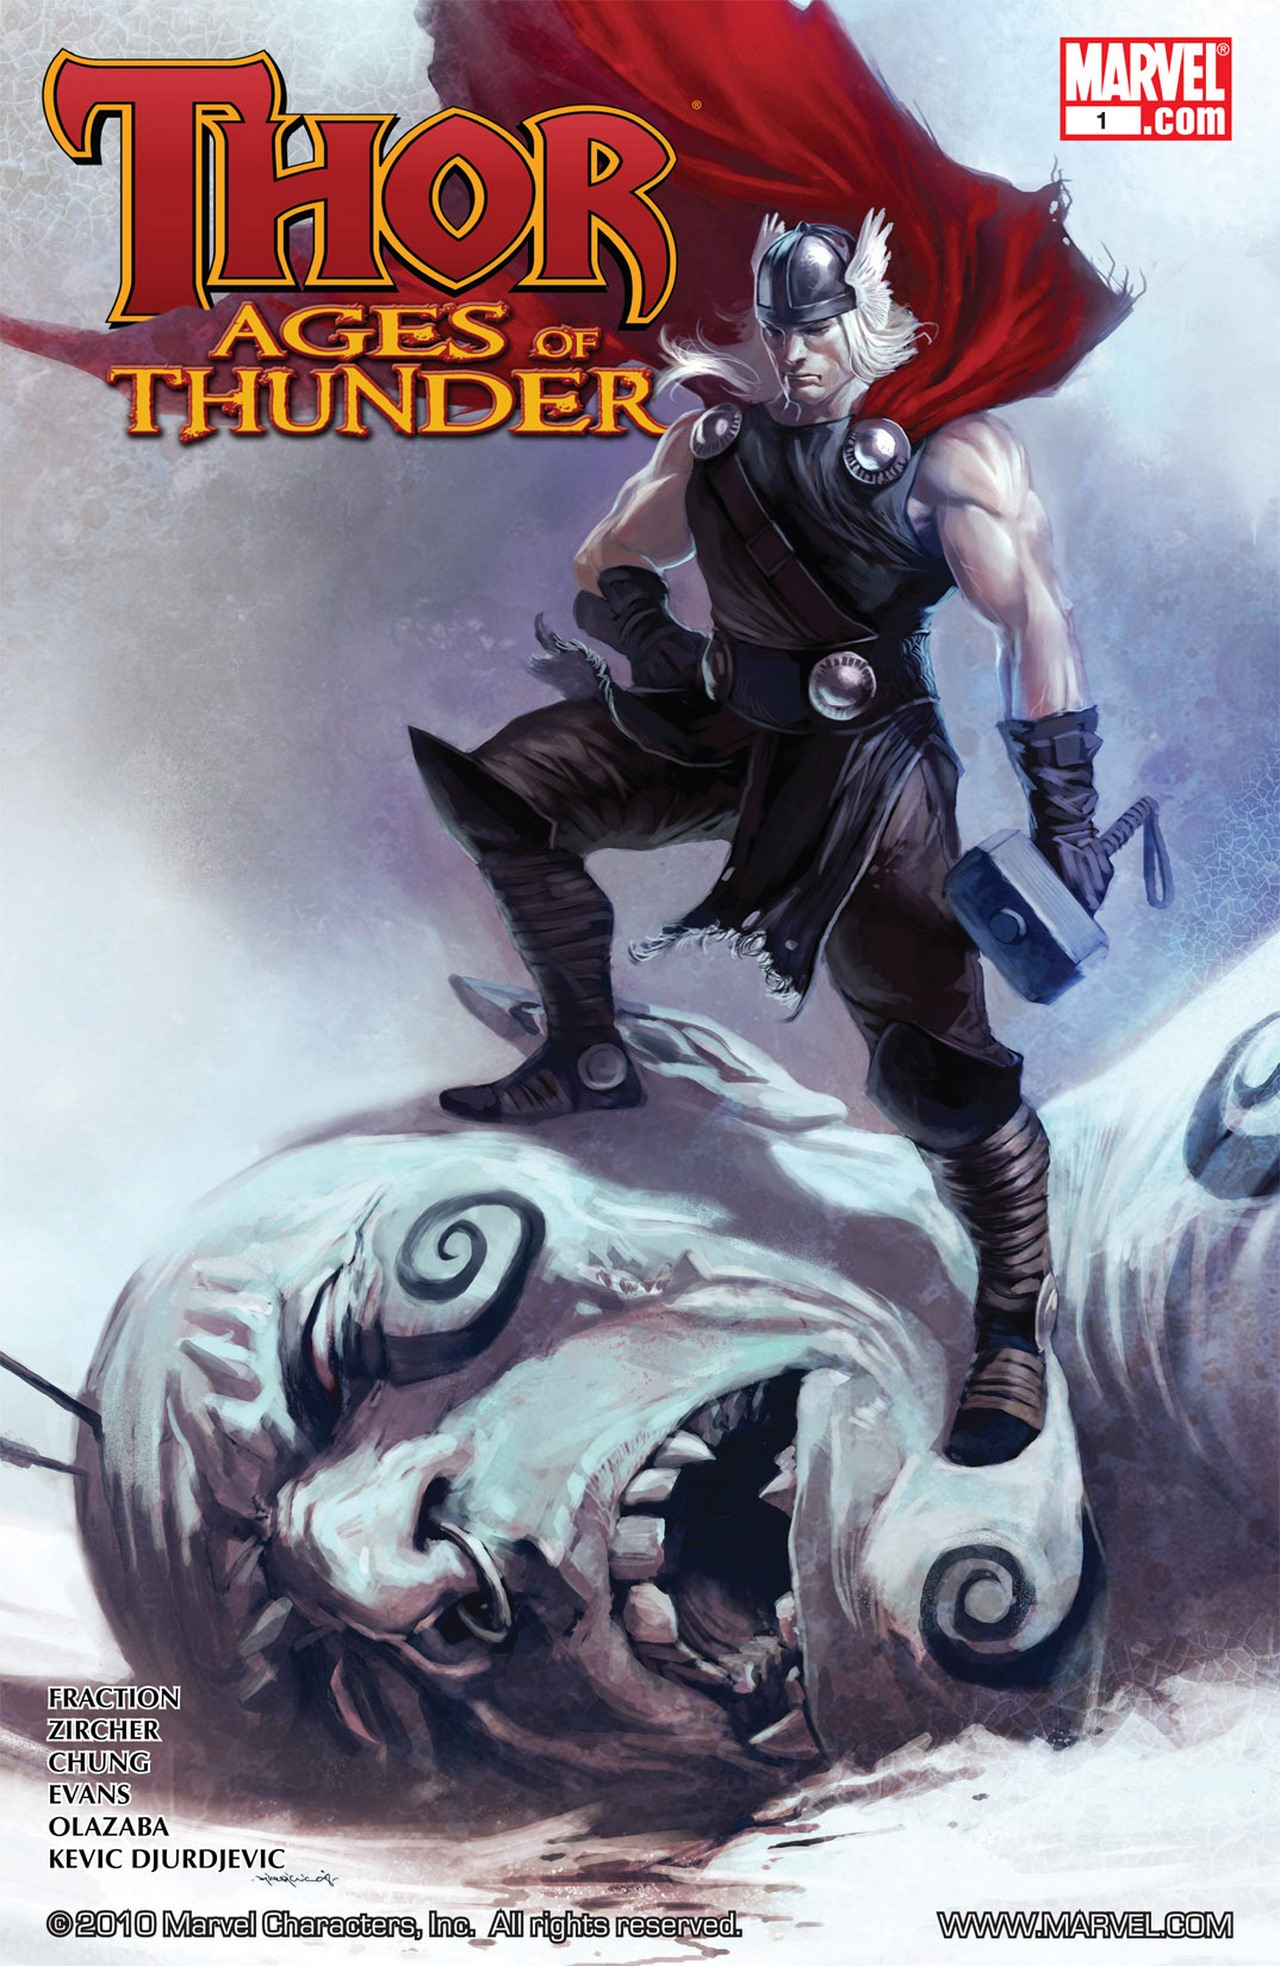 Thor: Ages of Thunder Full Page 1